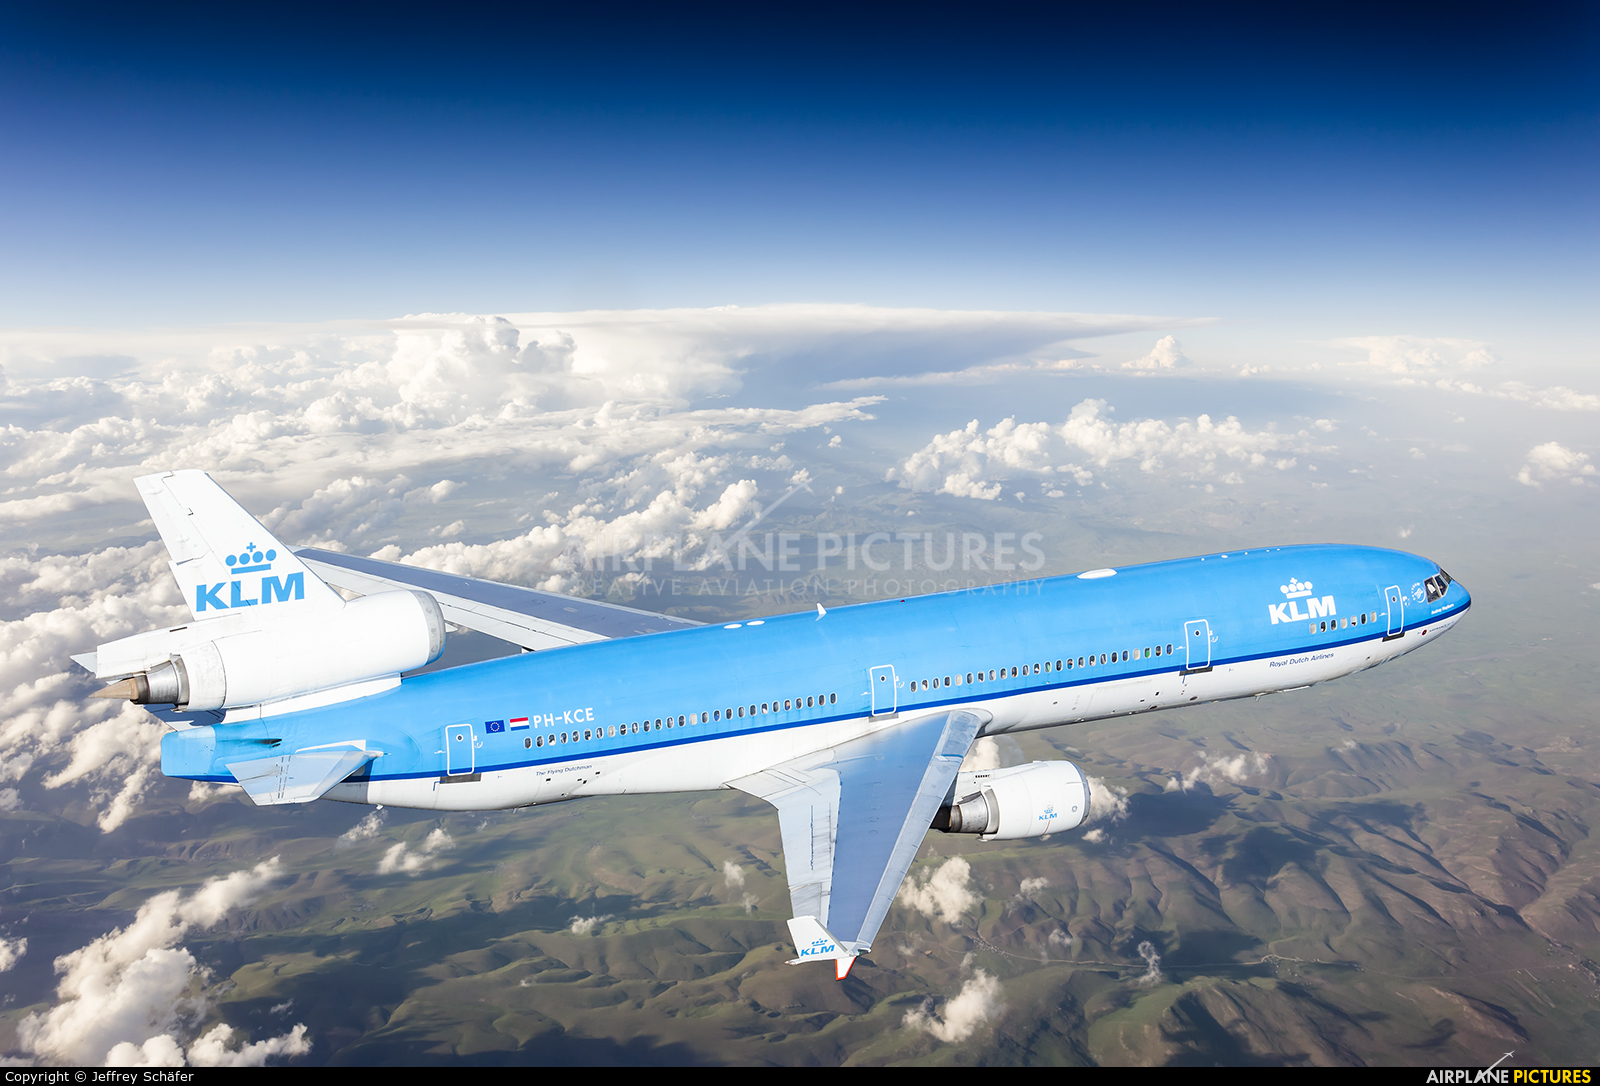 KLM PH-KCE aircraft at In Flight - International